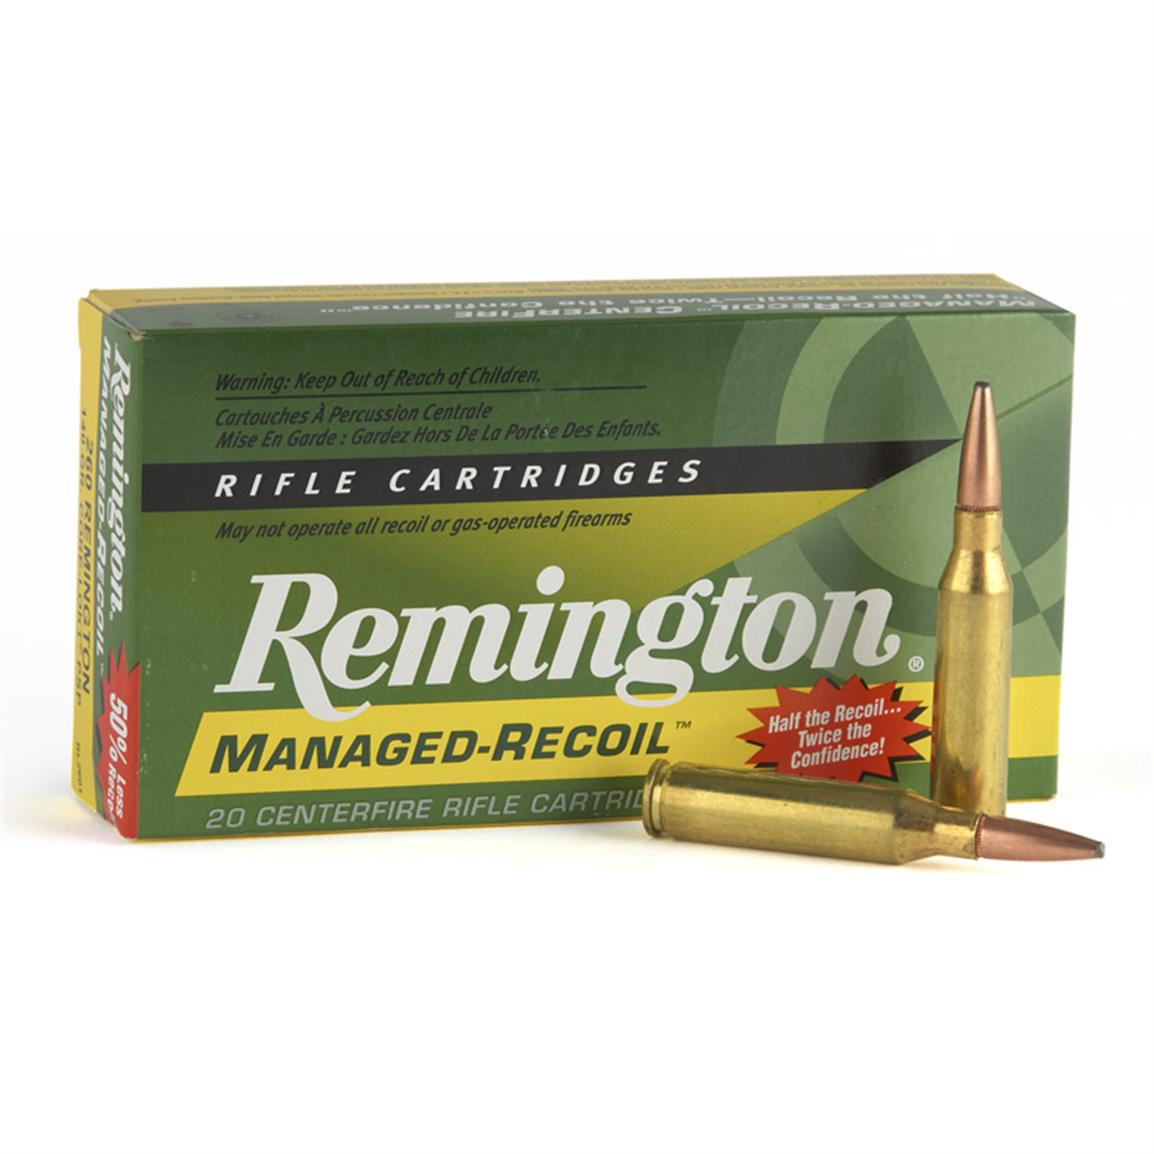 Remington Managed Recoil, 7mm Remington Magnum, Core-Lokt PSP, 140 Grain, 20 Rounds